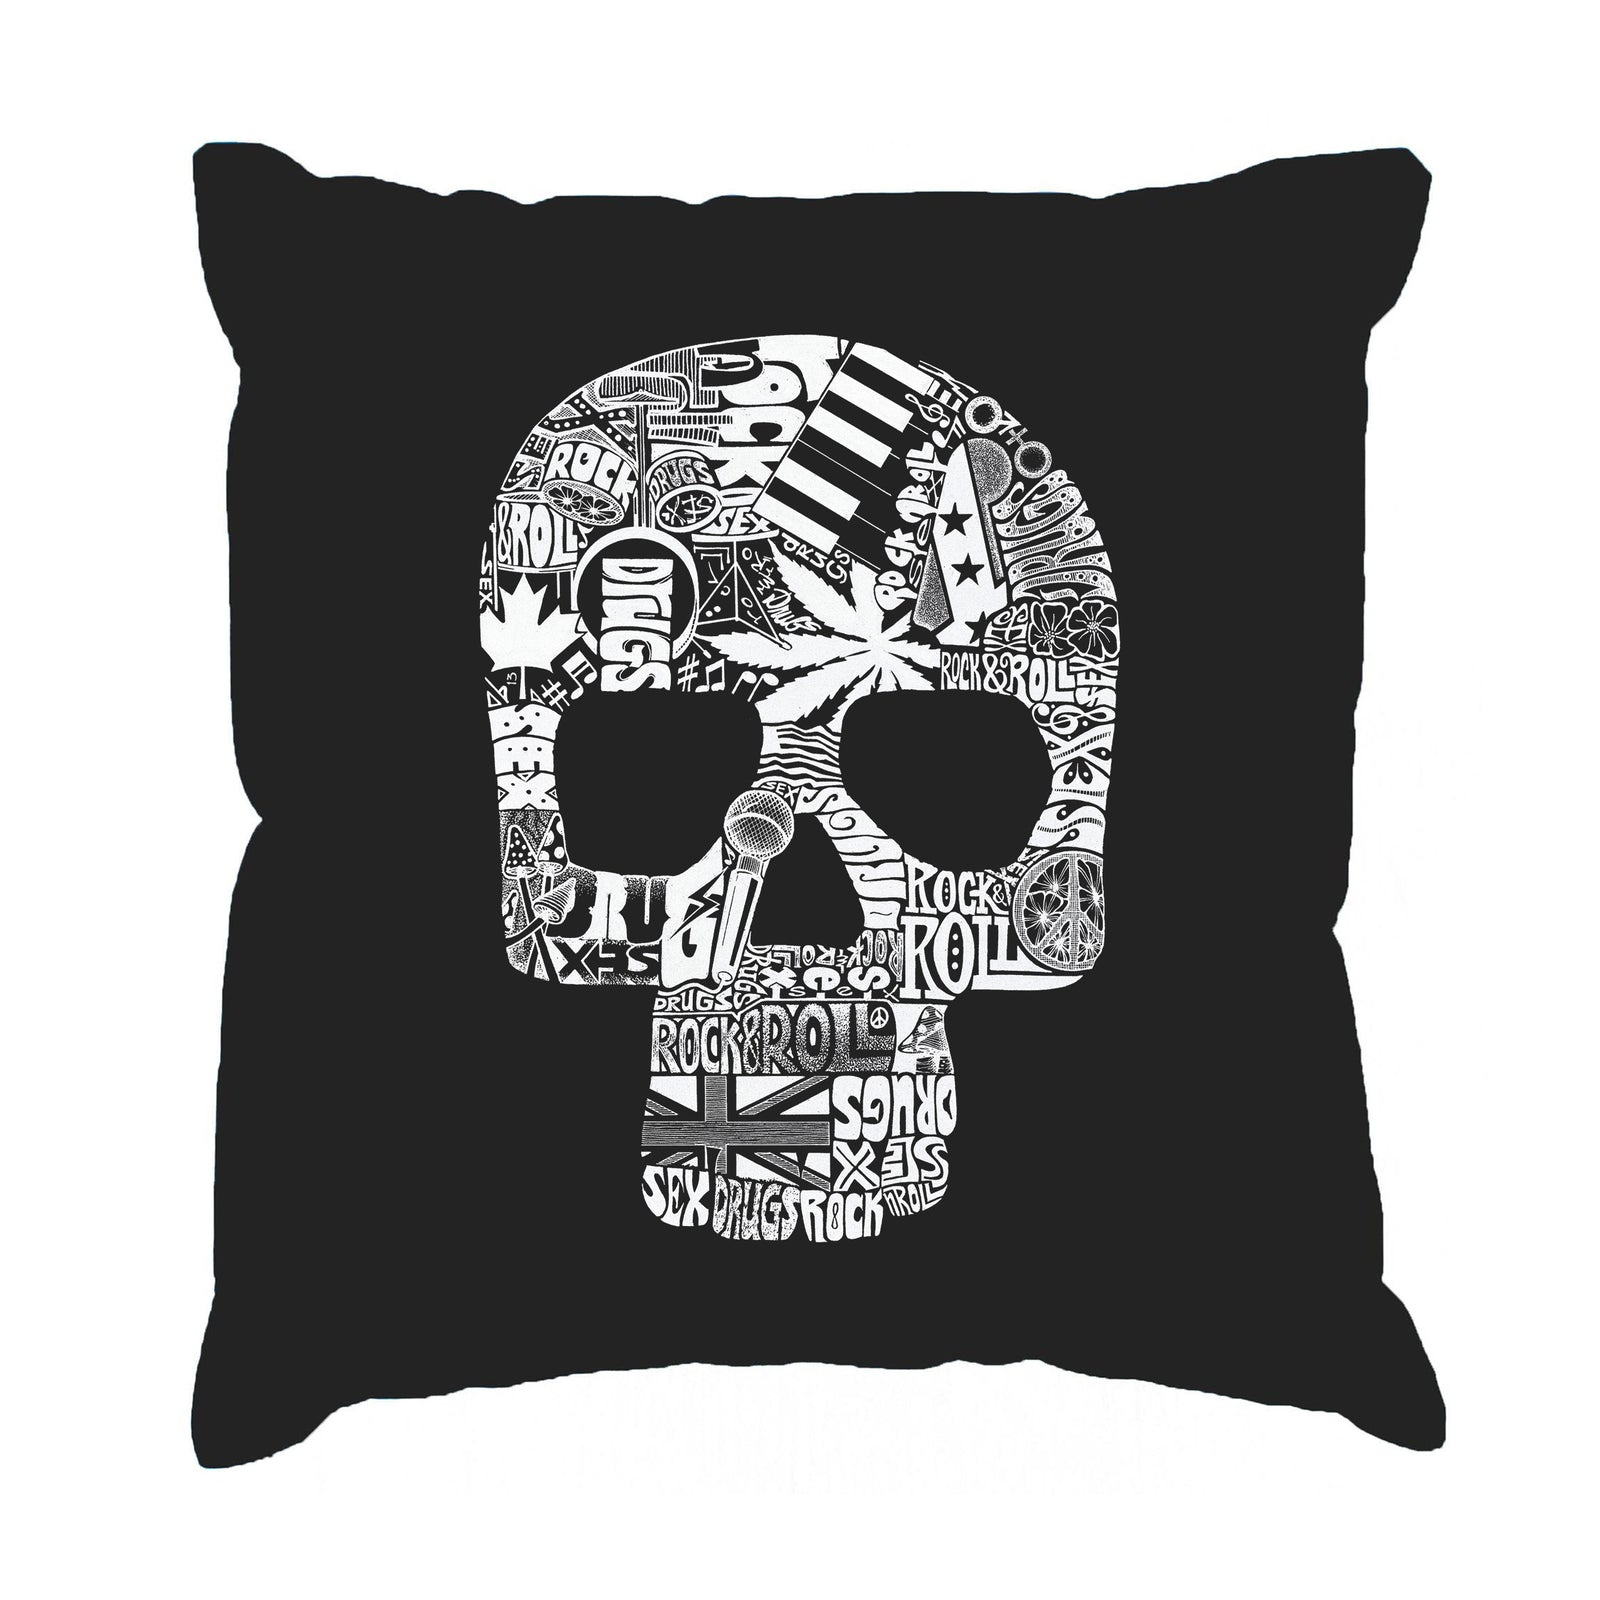 Throw Pillow Cover - Sex, Drugs, Rock & Roll